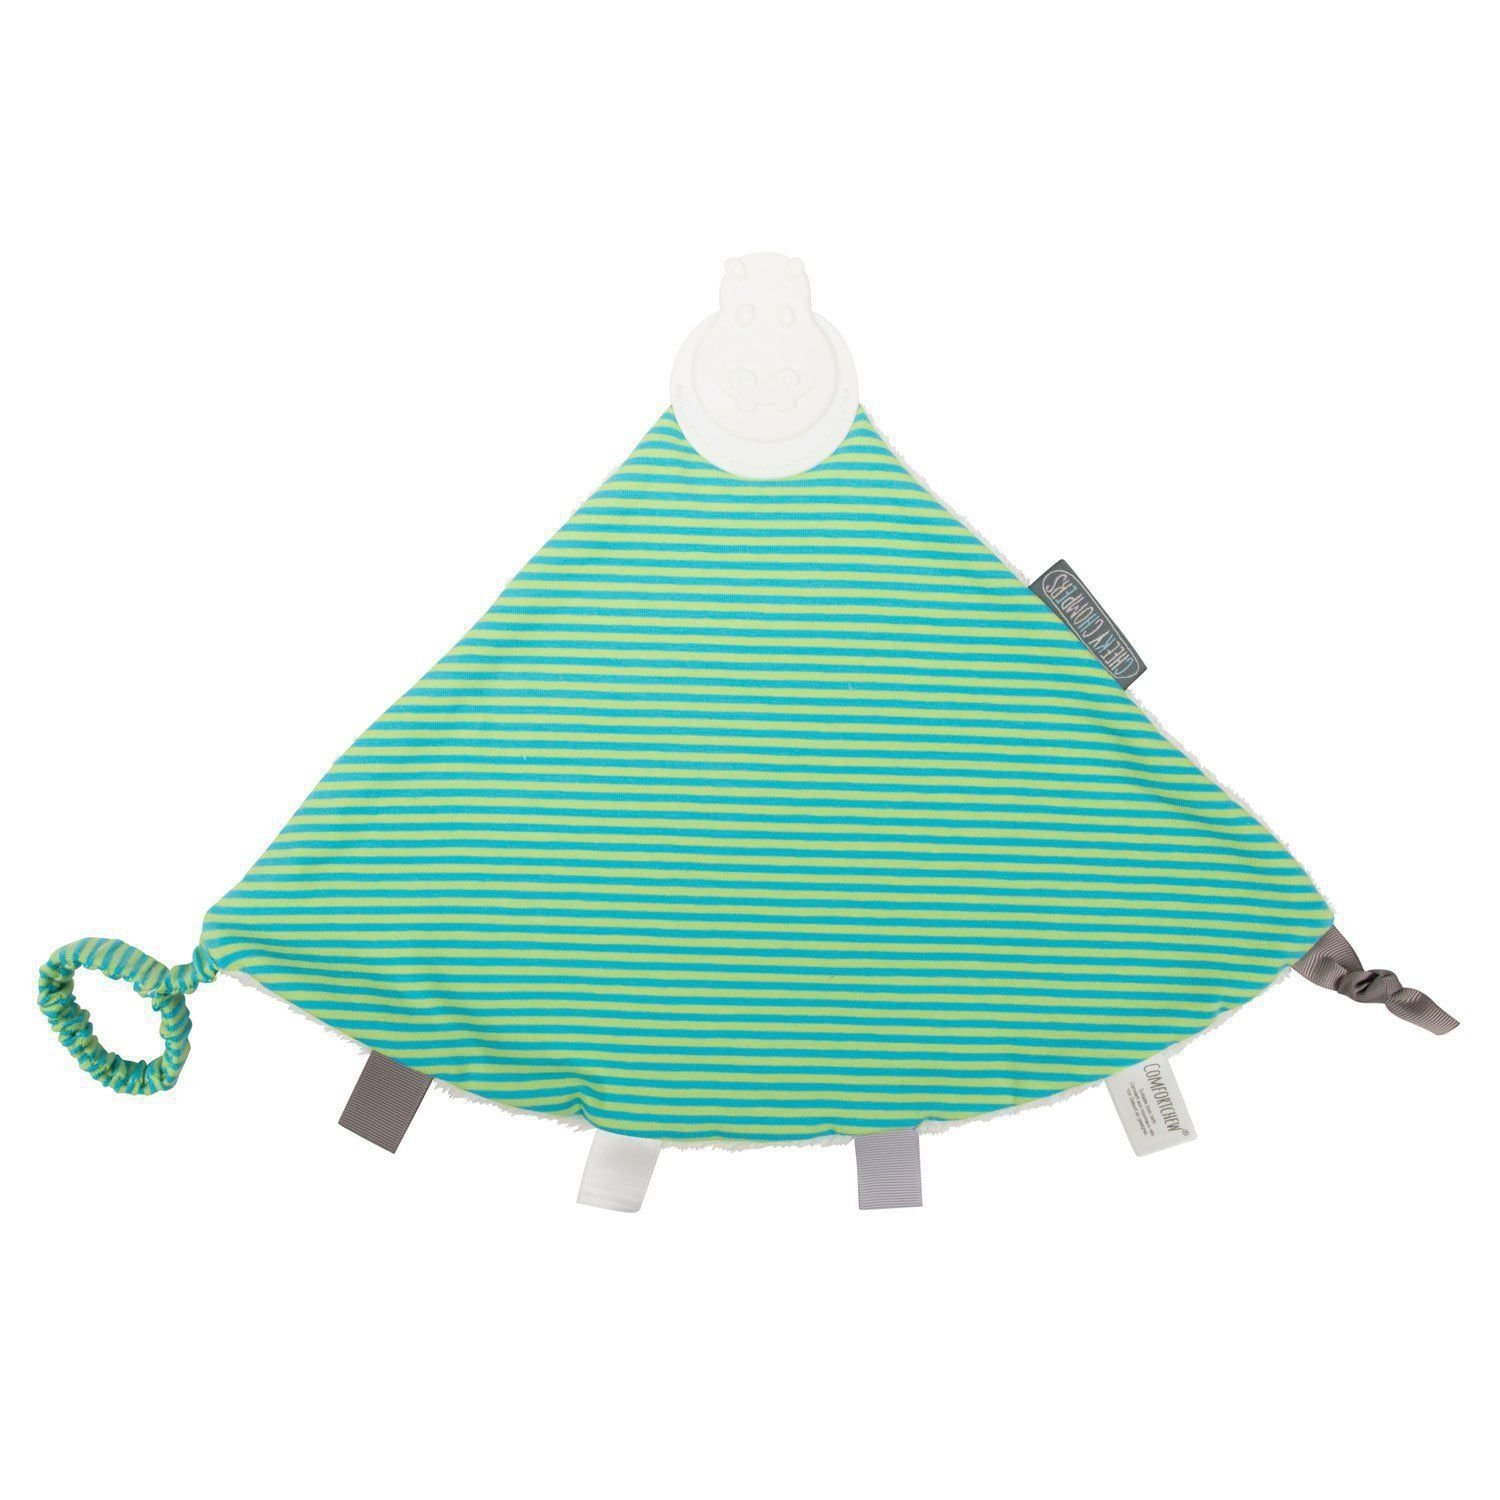 Cheeky Chompers Comfortchew Bib, Uni-Stripe, Green Cheeky Chompers® 771041